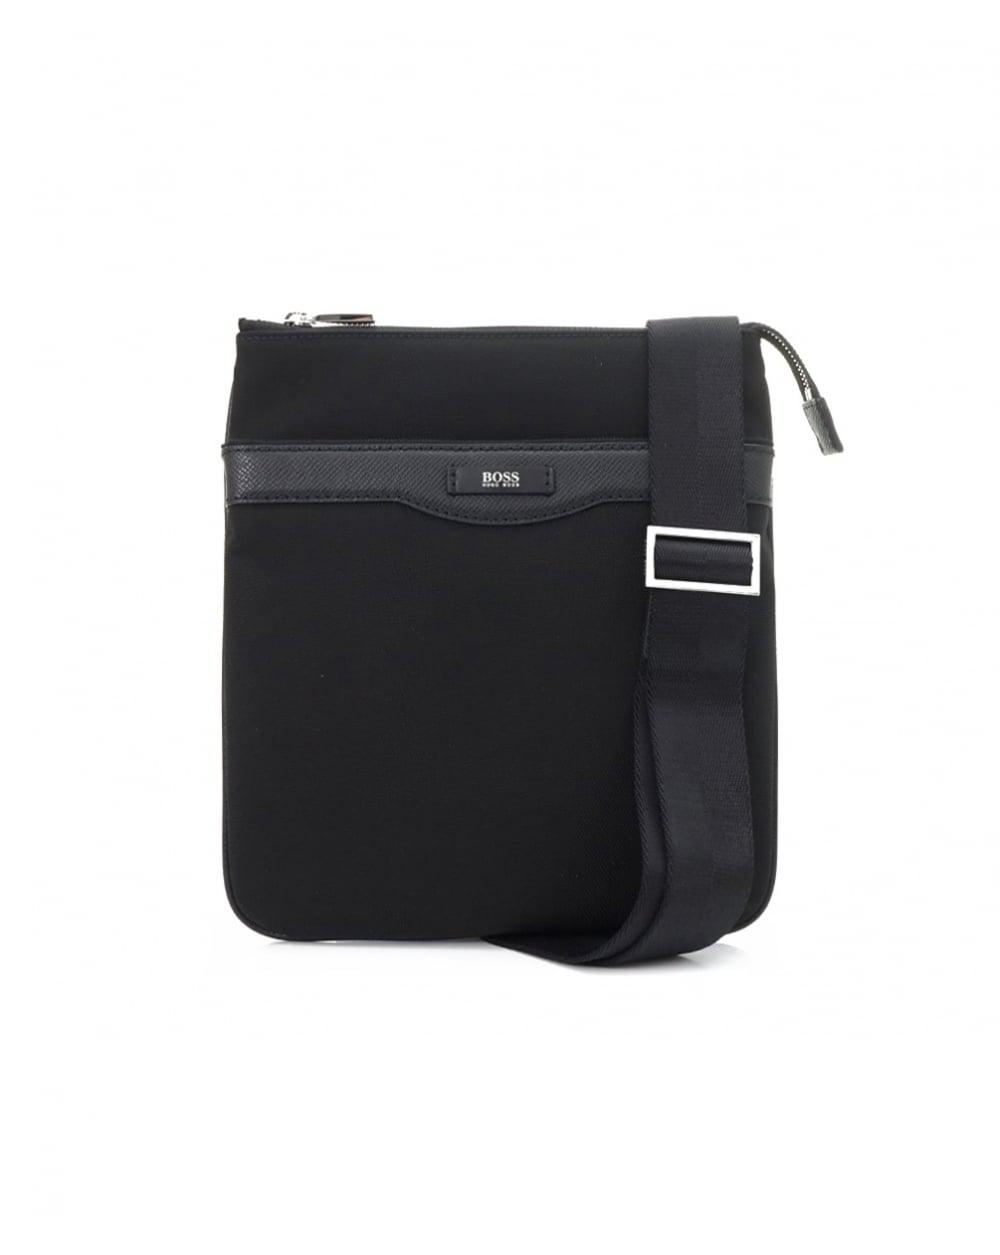 05c8c1225a37 Lyst - BOSS Black Signature Cross Body Pouch Bag in Black for Men